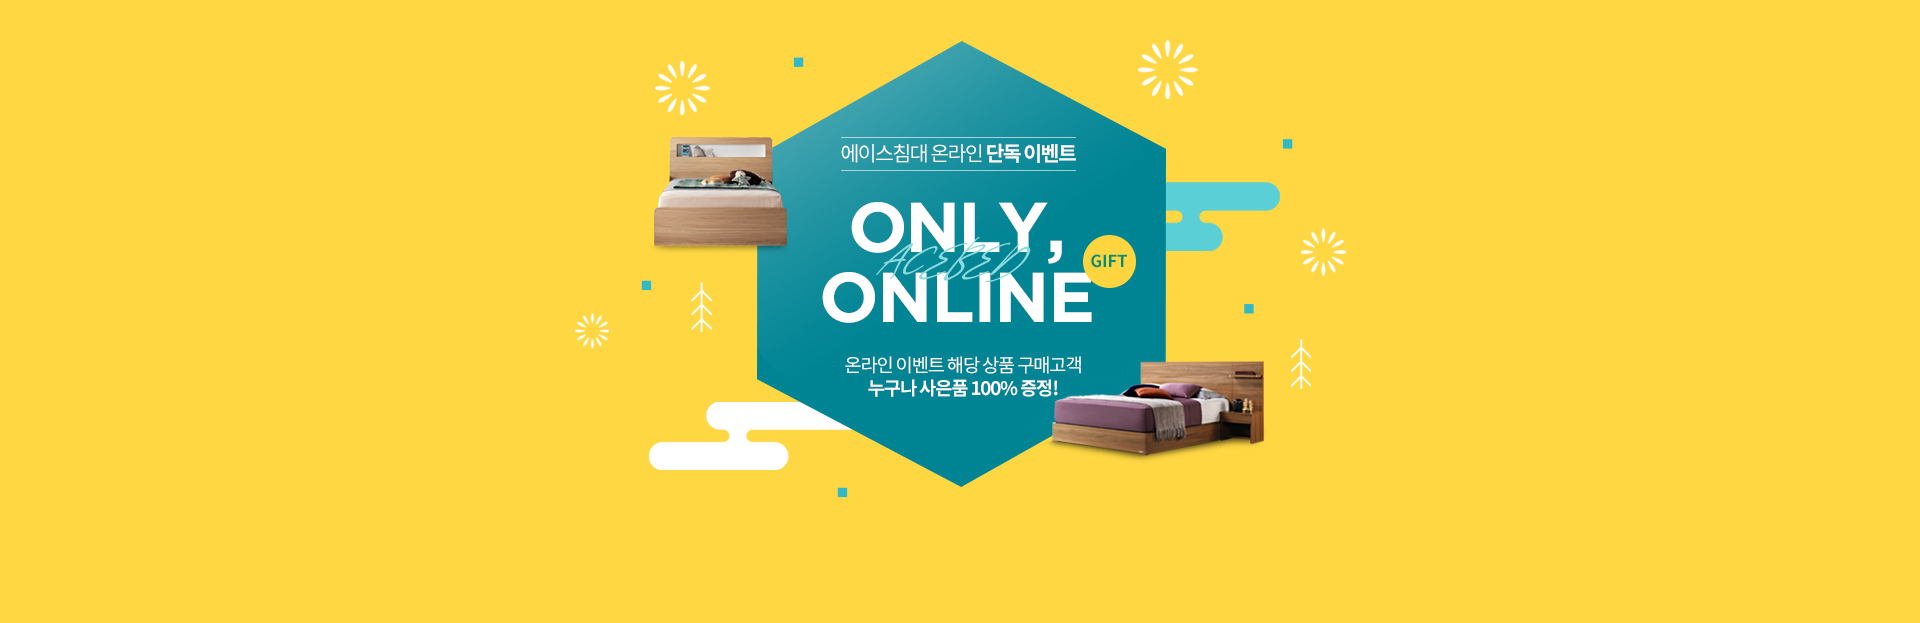 ONLY, ONLINE